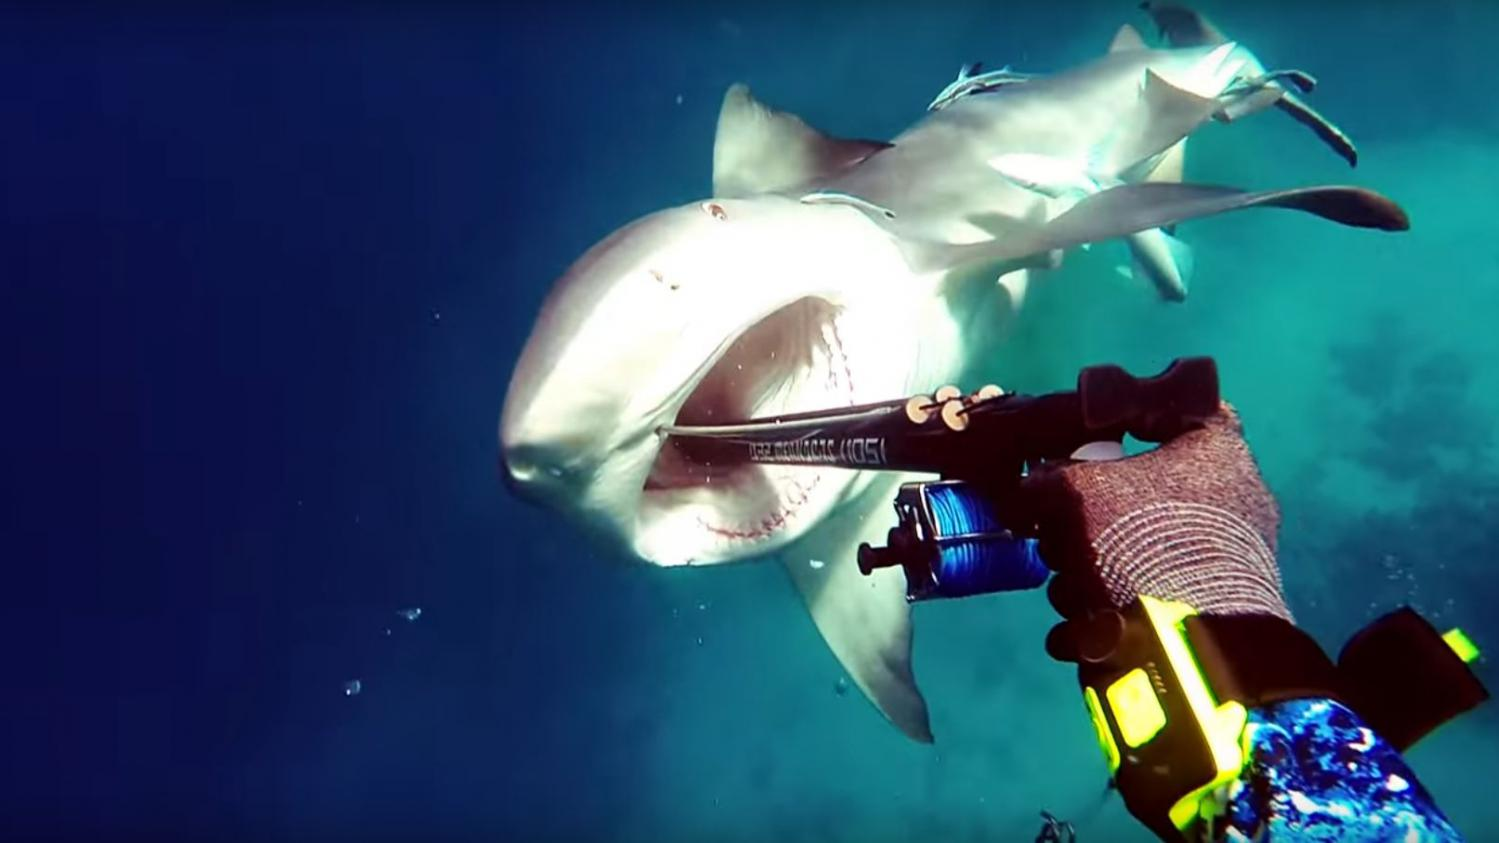 British diver stalked by shark for hours